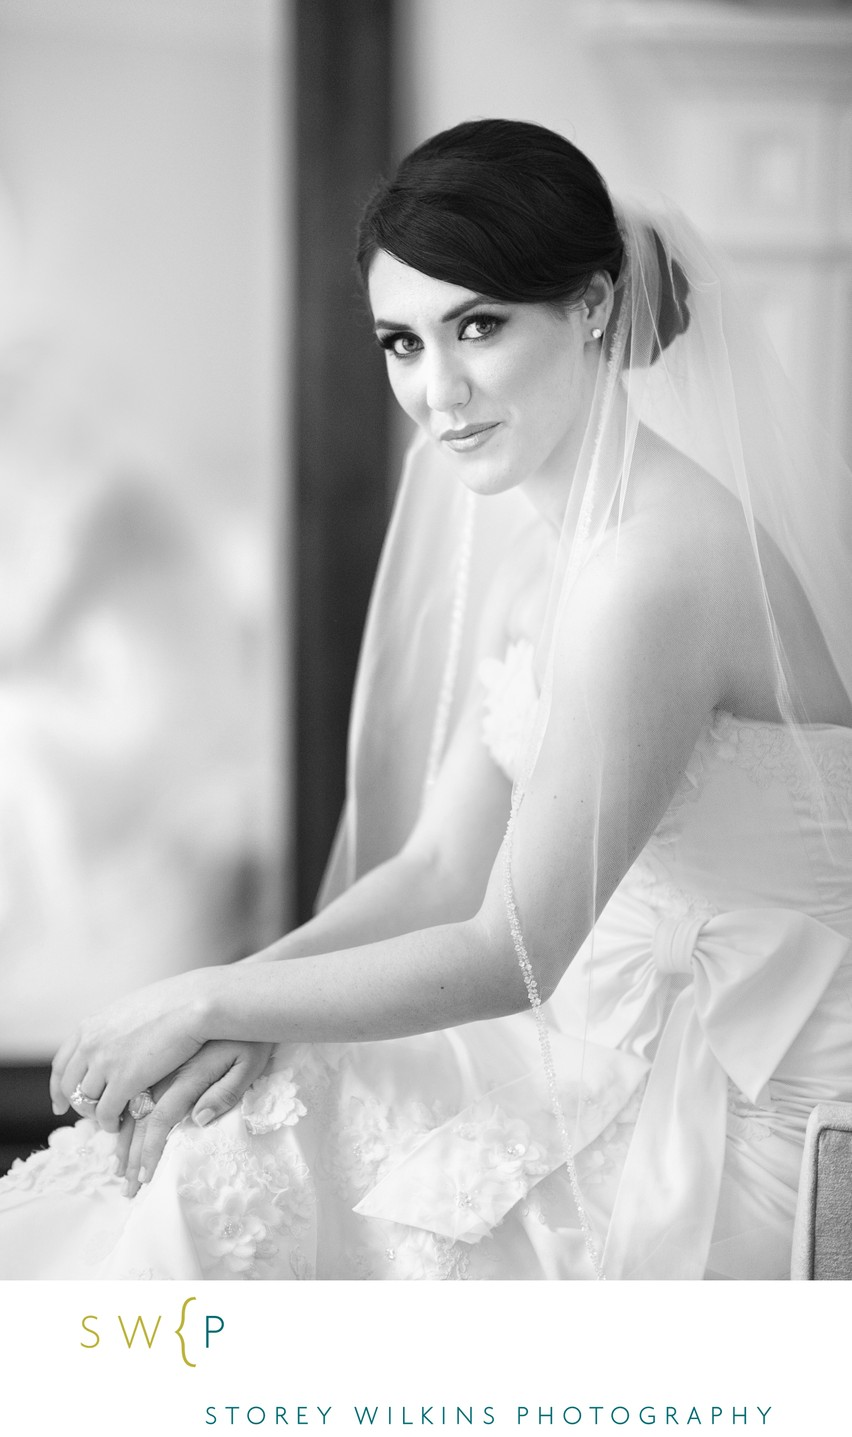 Toronto Elegant Bridal Portrait Photo by Storey Wilkins